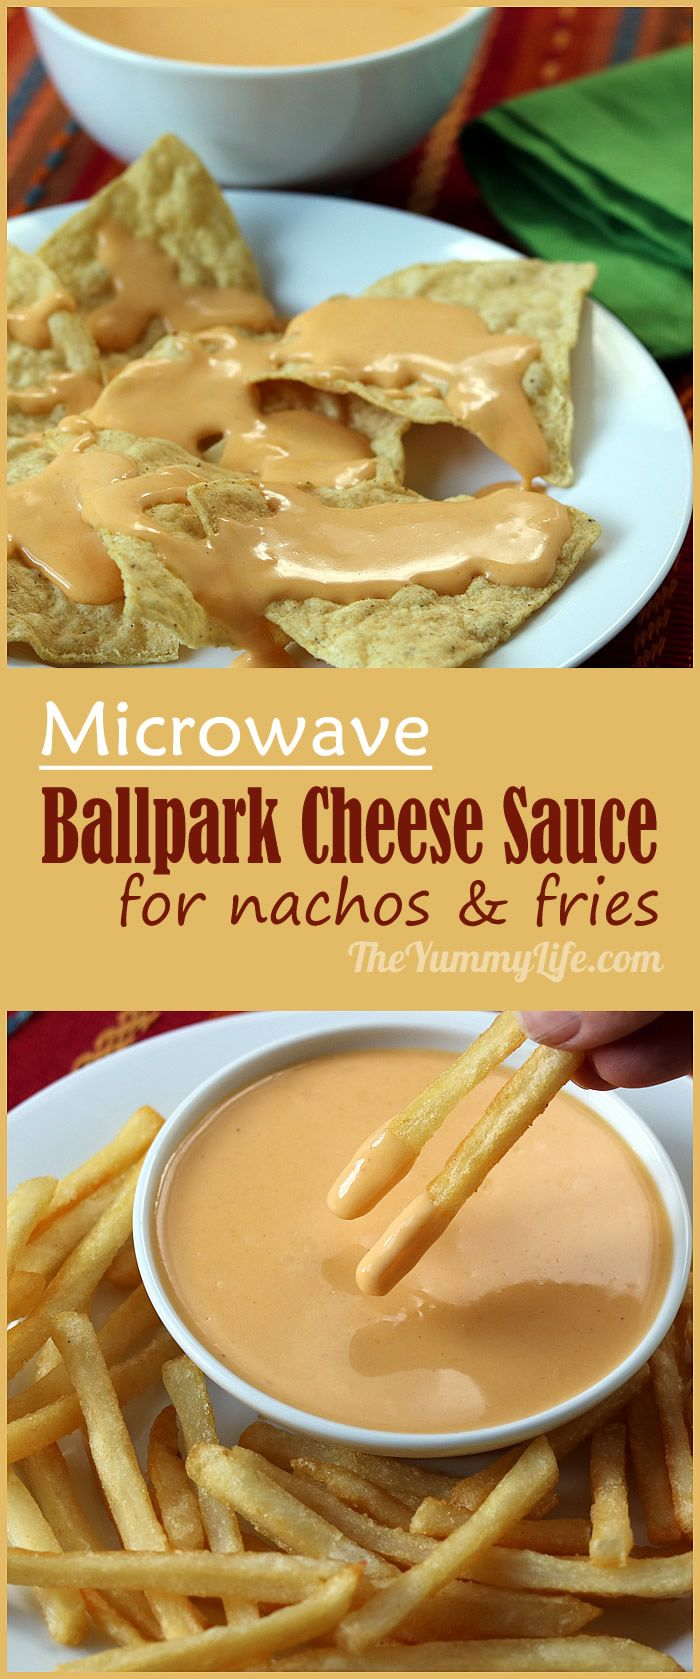 Microwave Ballpark Cheddar Cheese Sauce and Dip